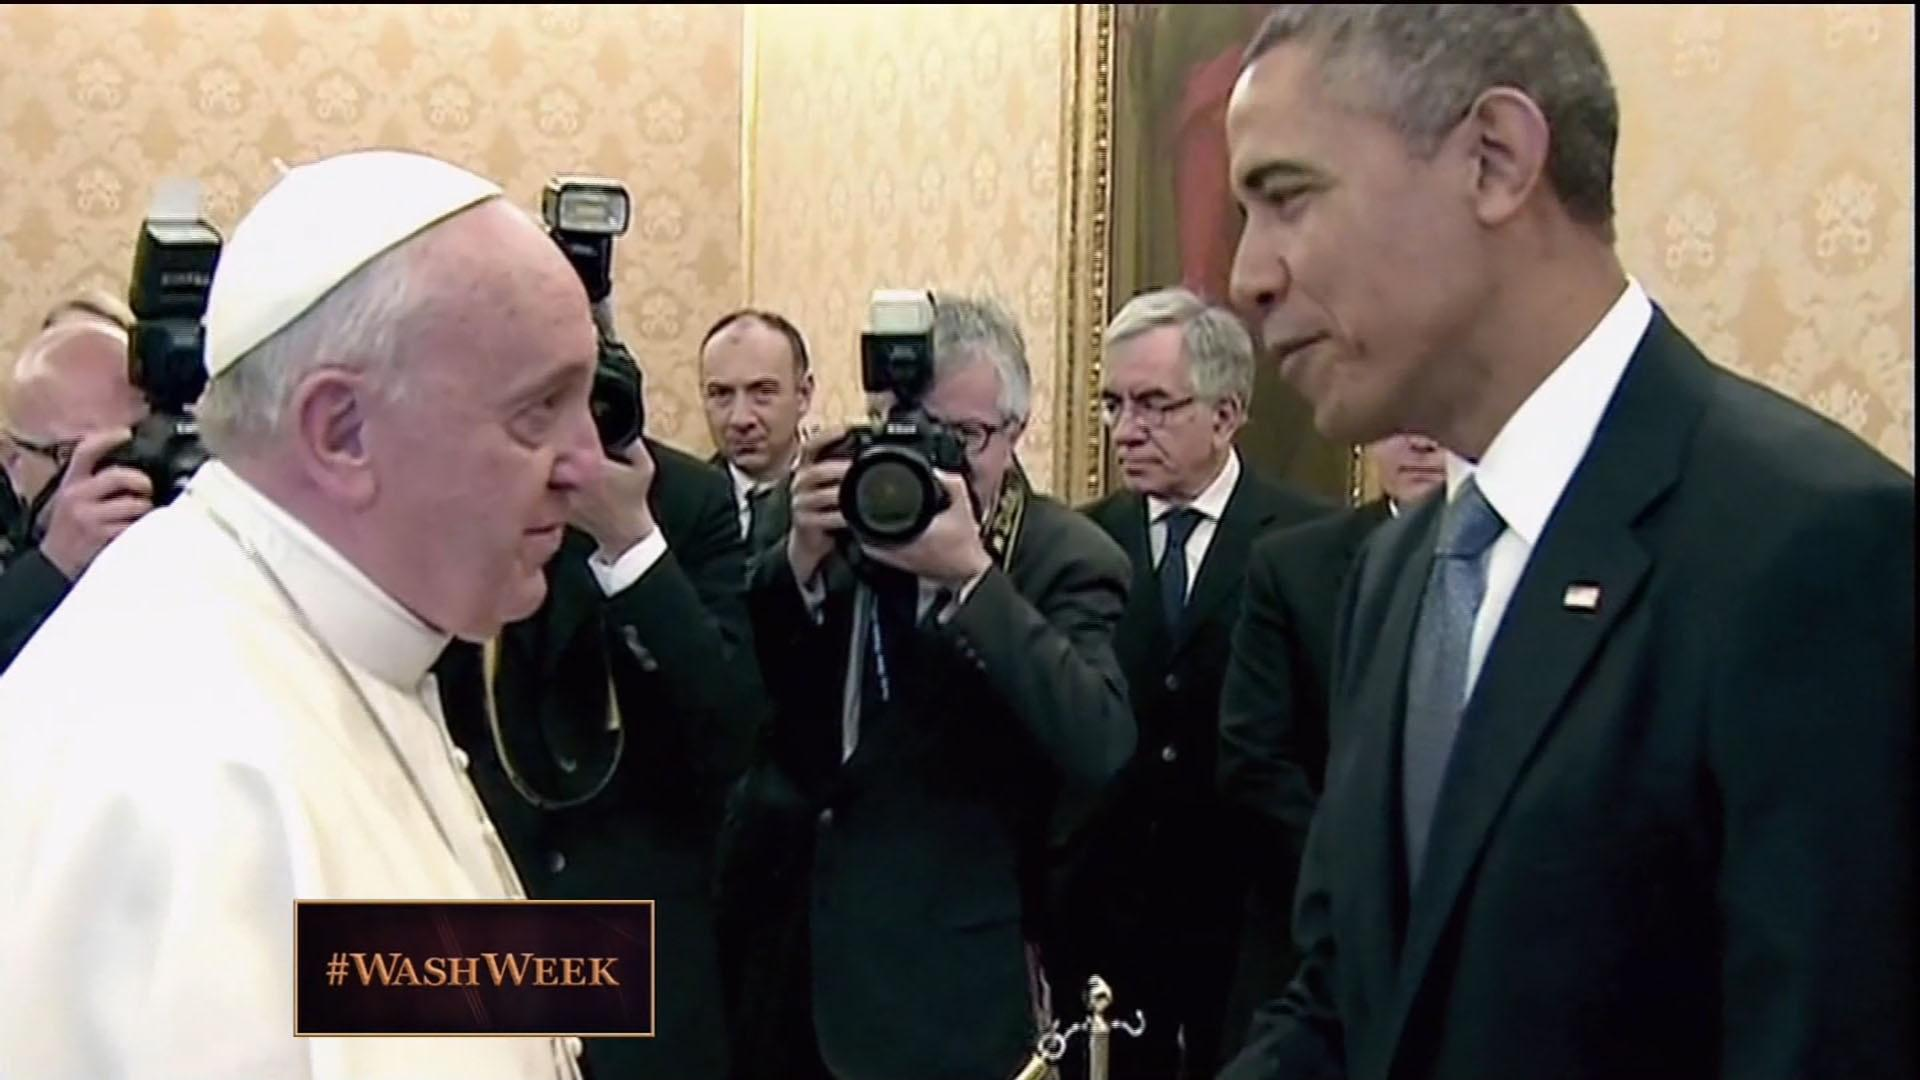 From the Vault: President Obama Meets Pope Francis